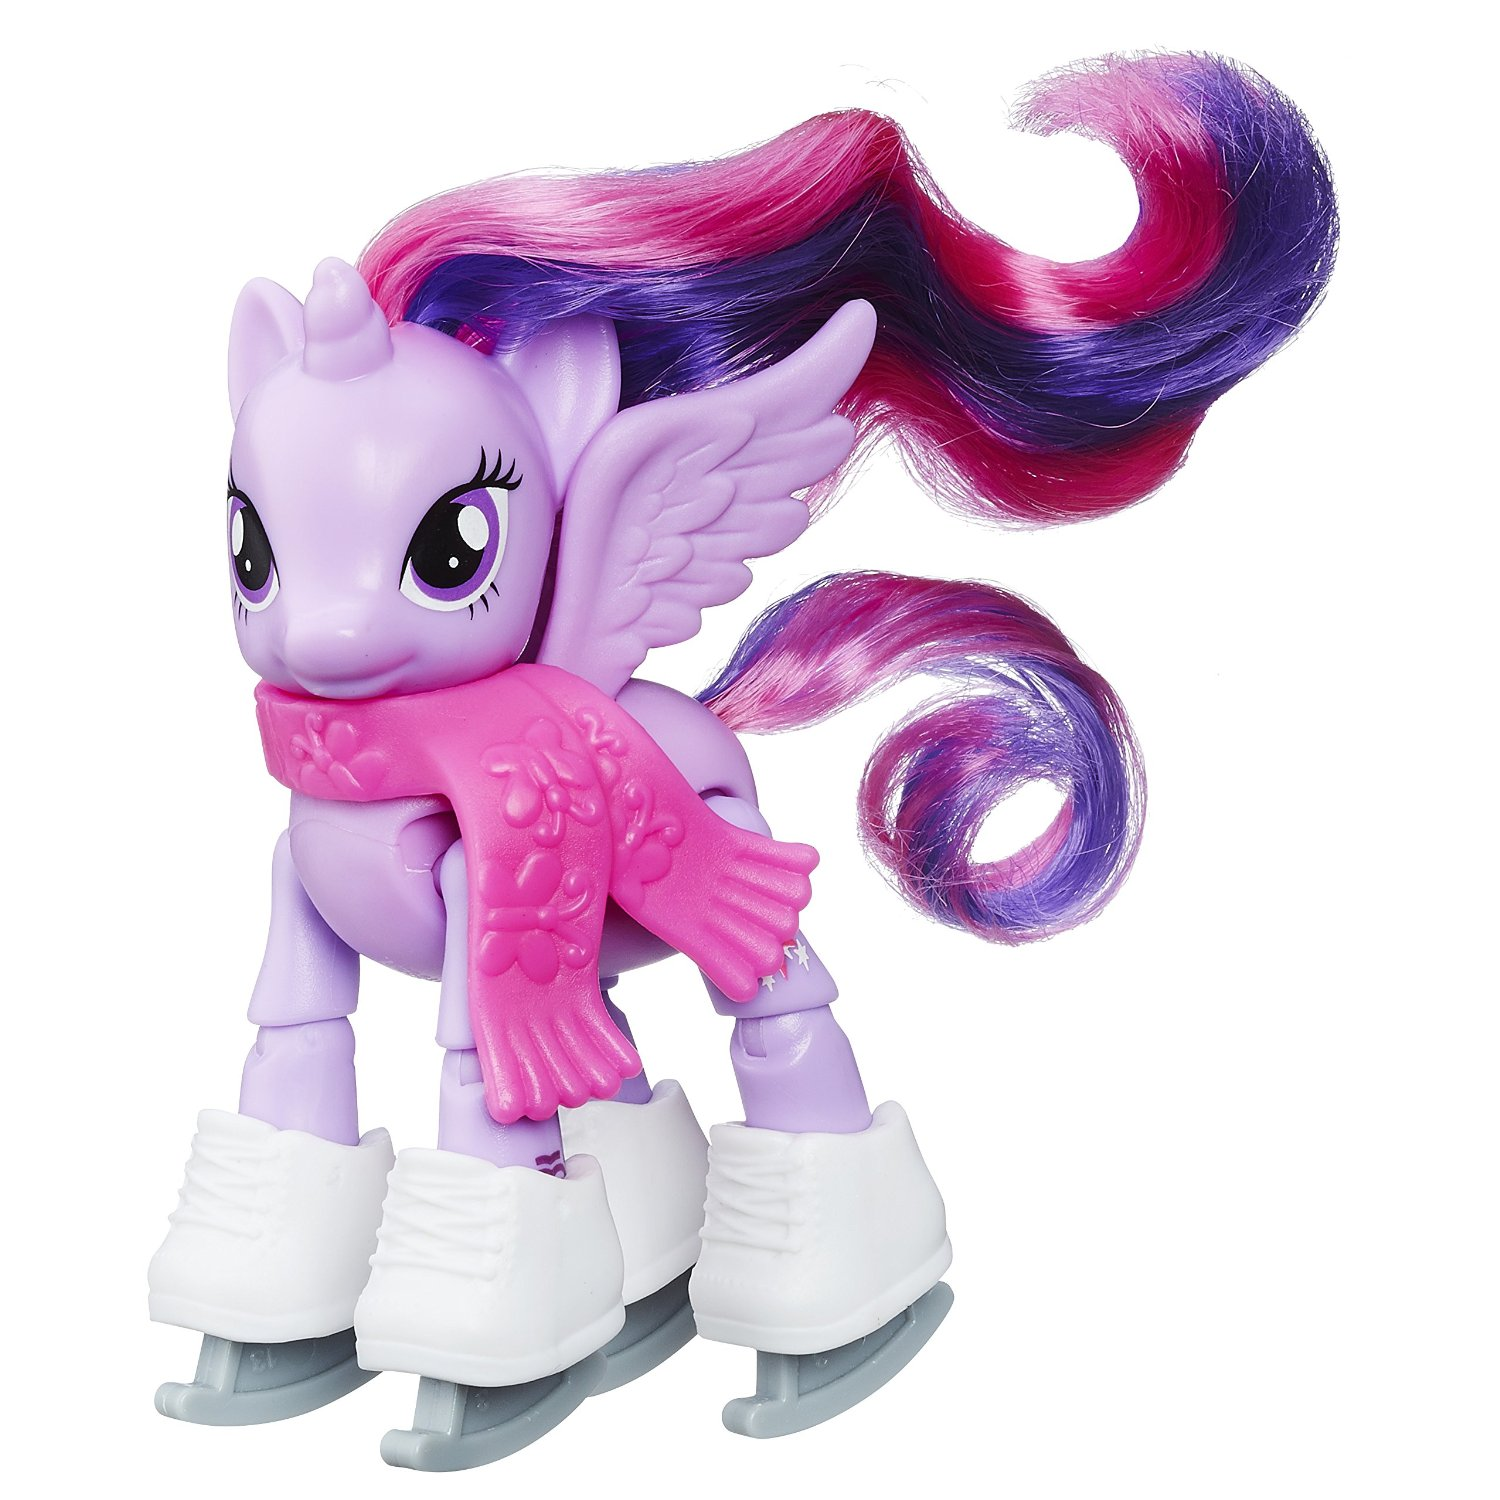 Equestria daily mlp stuff posable explore equestria - Princesse poney ...